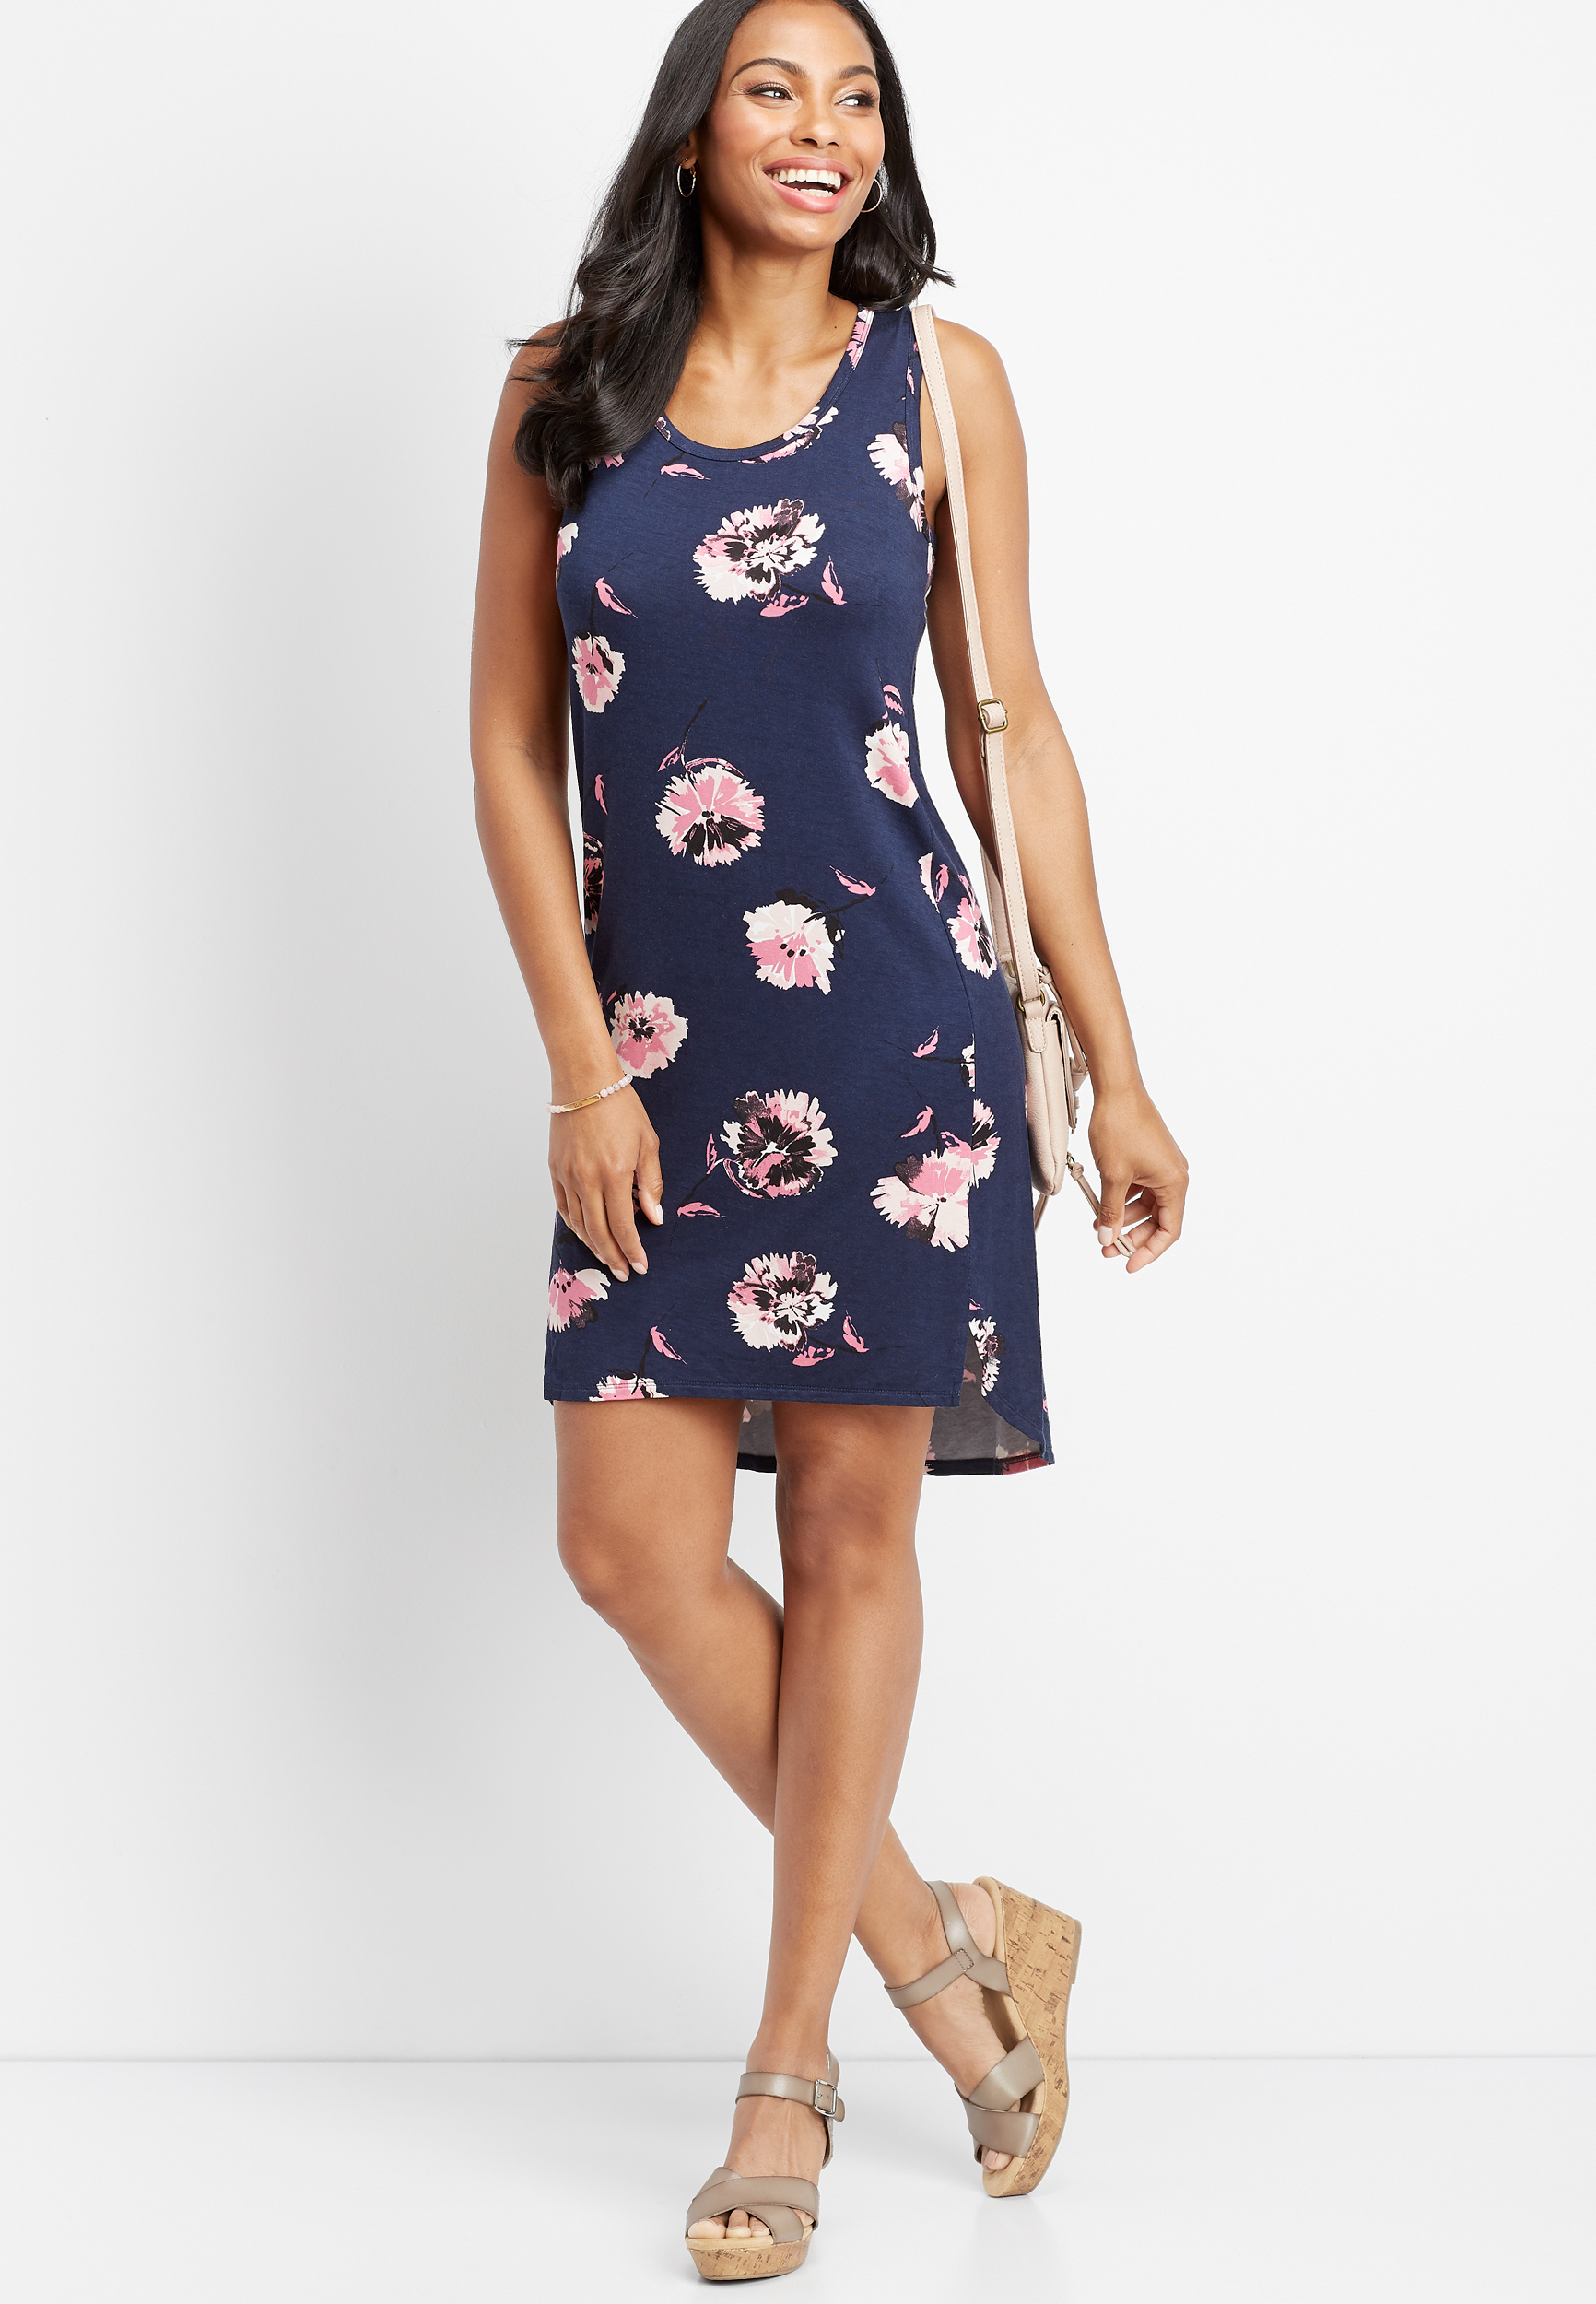 24/7 Floral Scoop Neck Tank Dress by Maurices